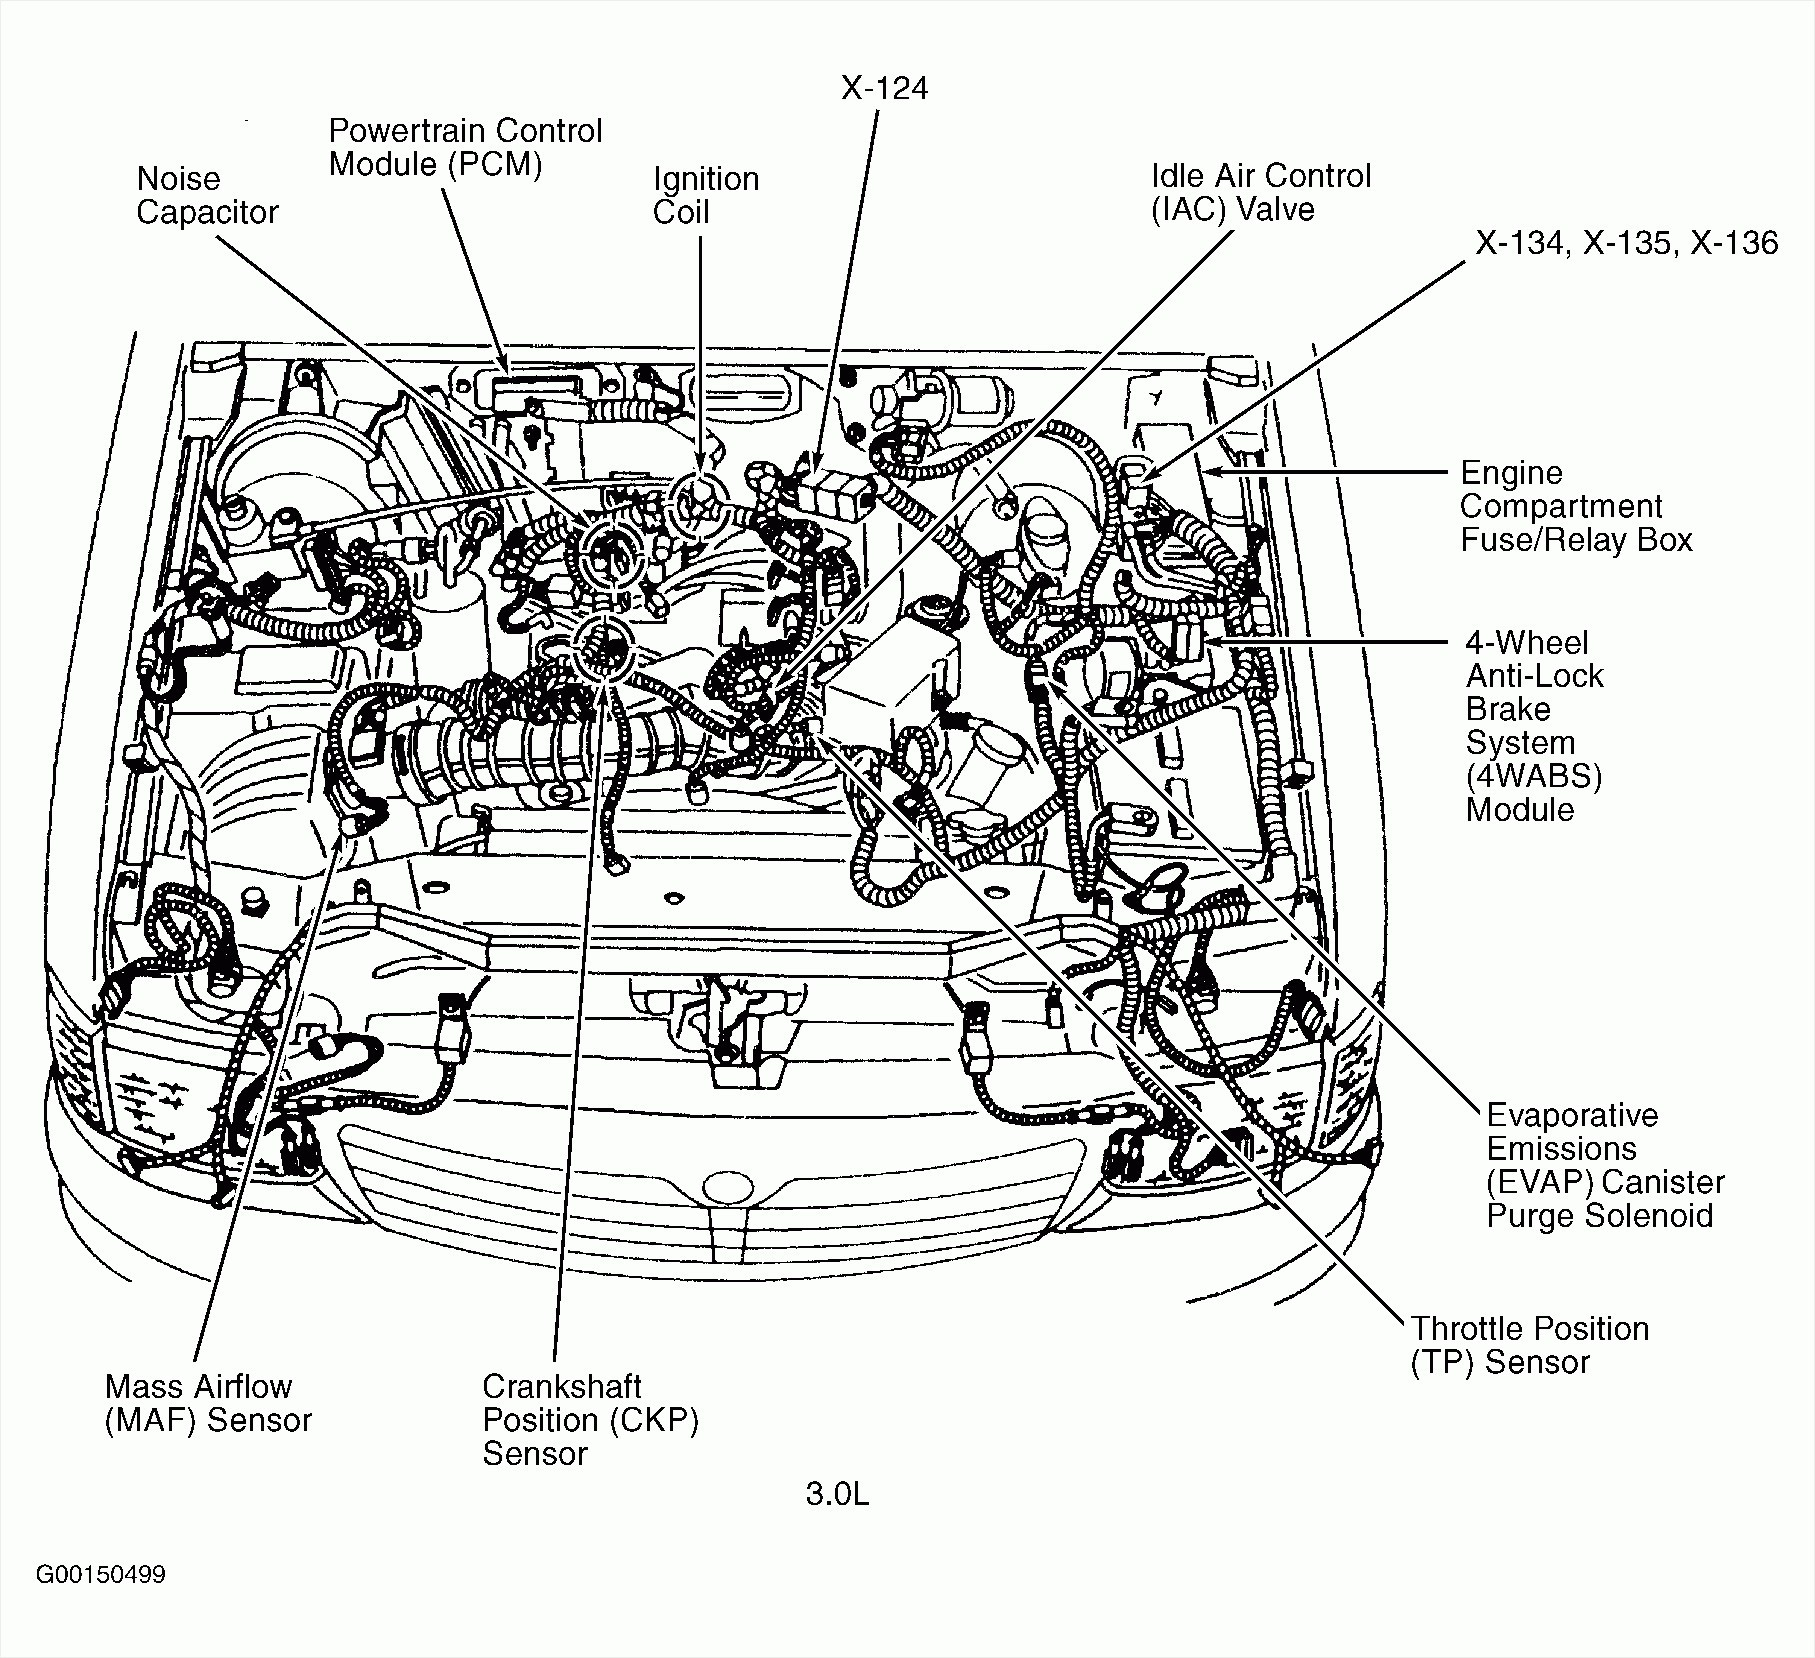 mazda b2300 engine diagram wiring diagram experts mazda b2300 engine diagram data wiring diagram 2003 mazda b2300 engine diagram 1999 mazda b3000 engine